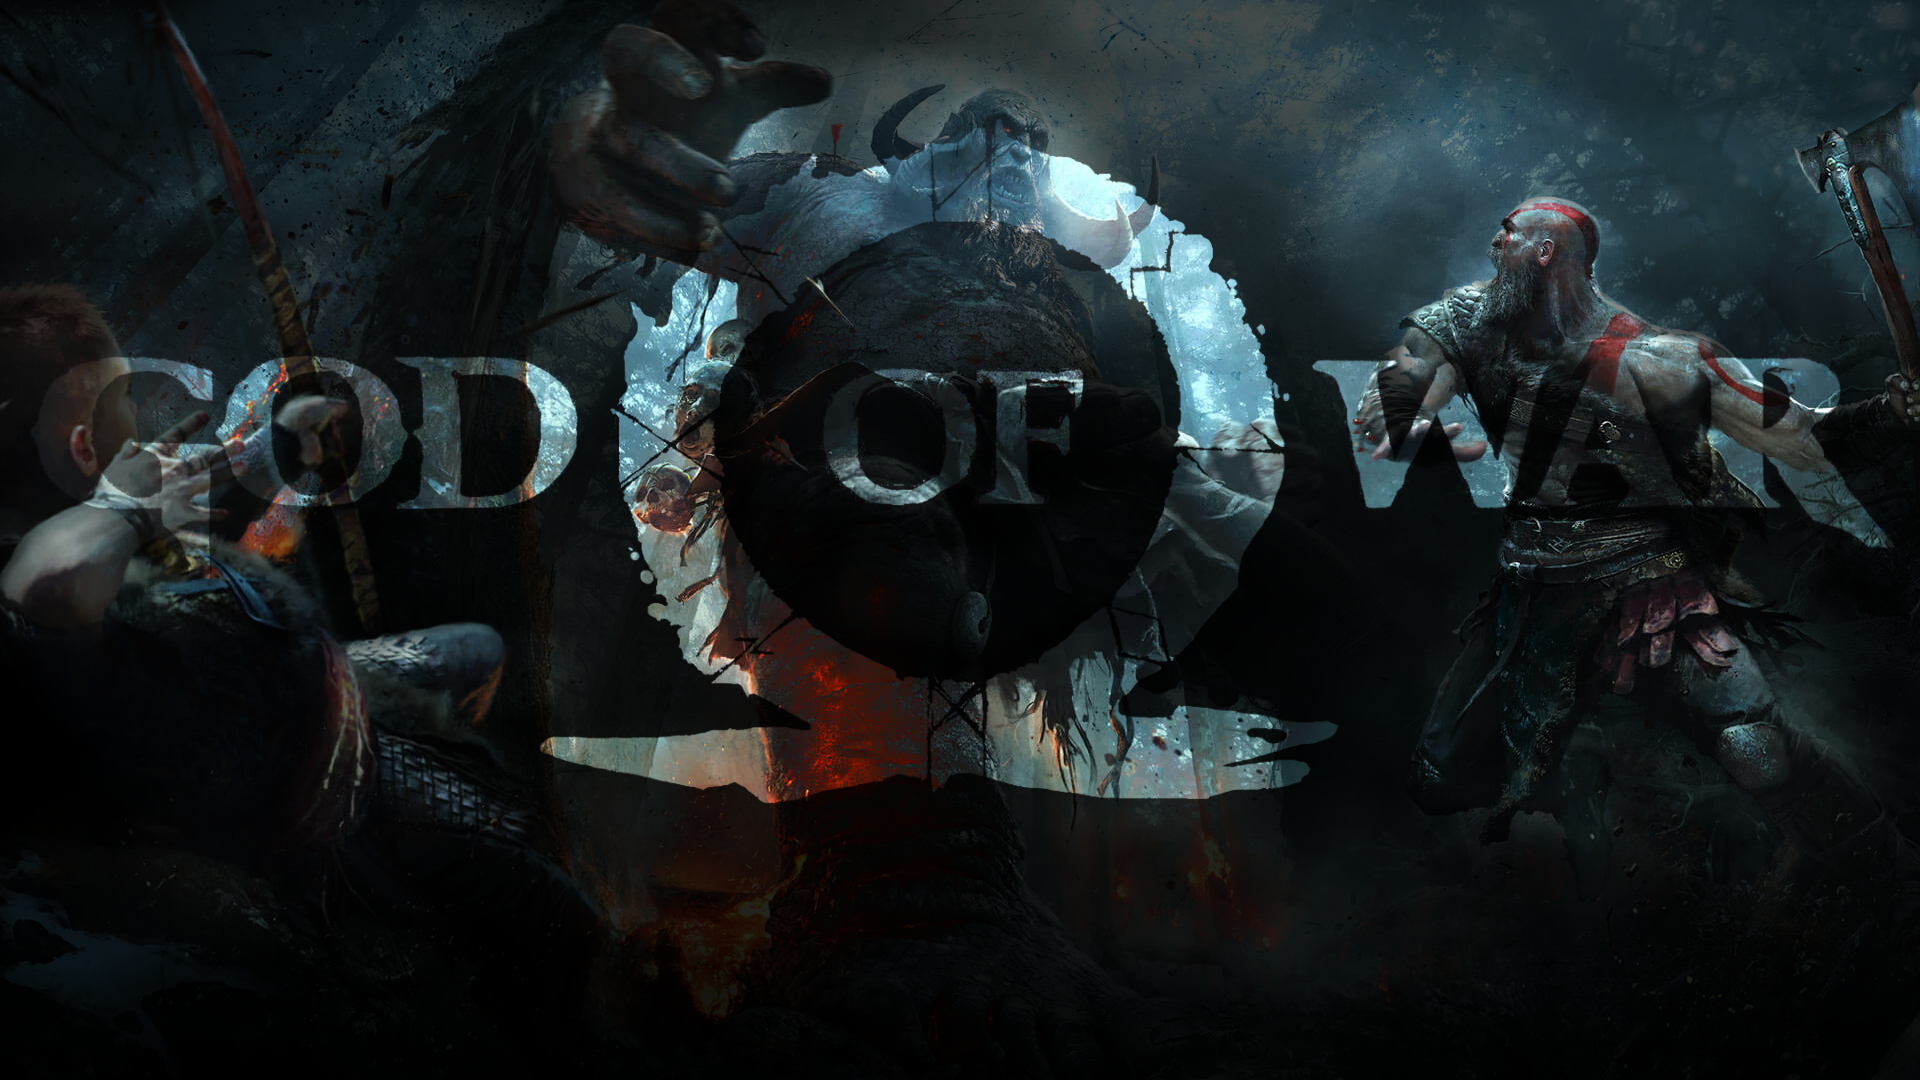 God Of War Ps4 Wallpaper 1080p By Claterz Wallpaper God Of War